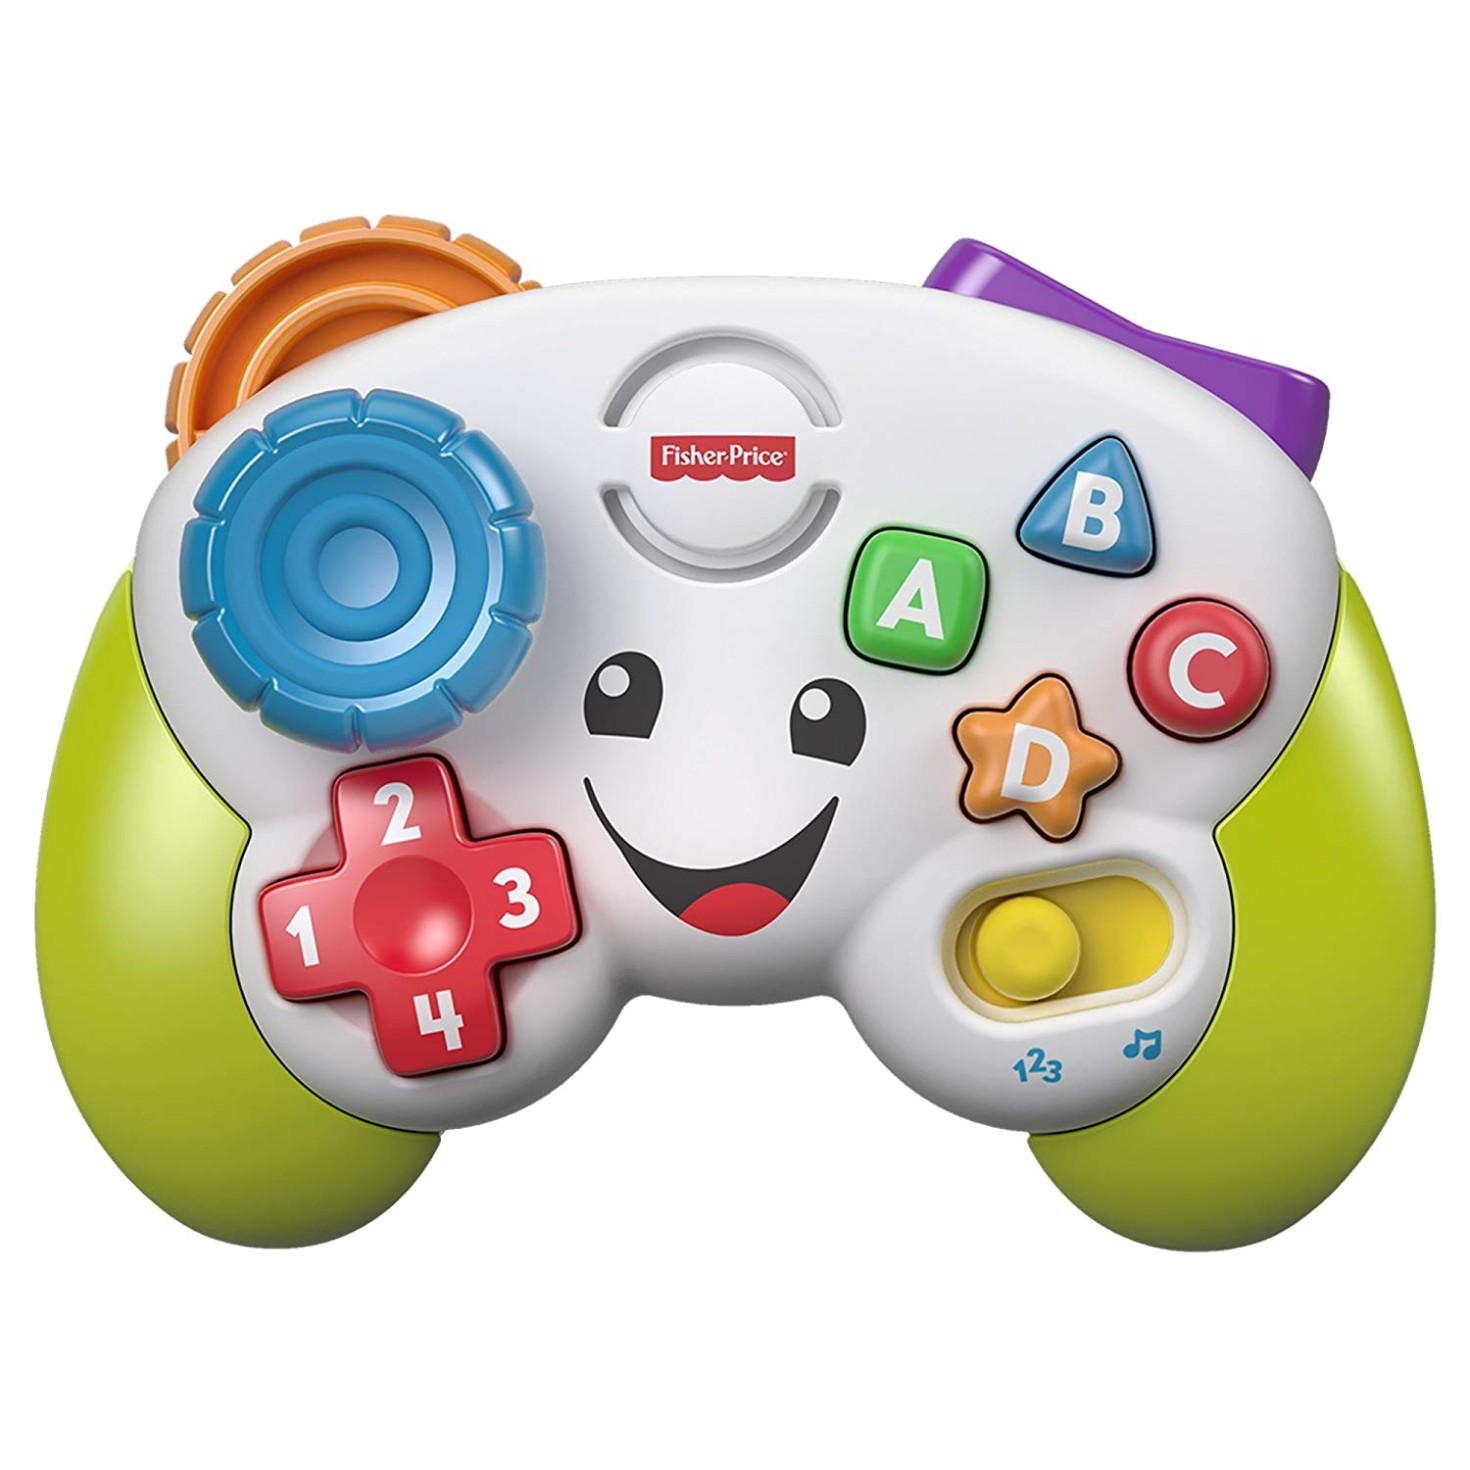 GAME & LEARN CONTROLLER